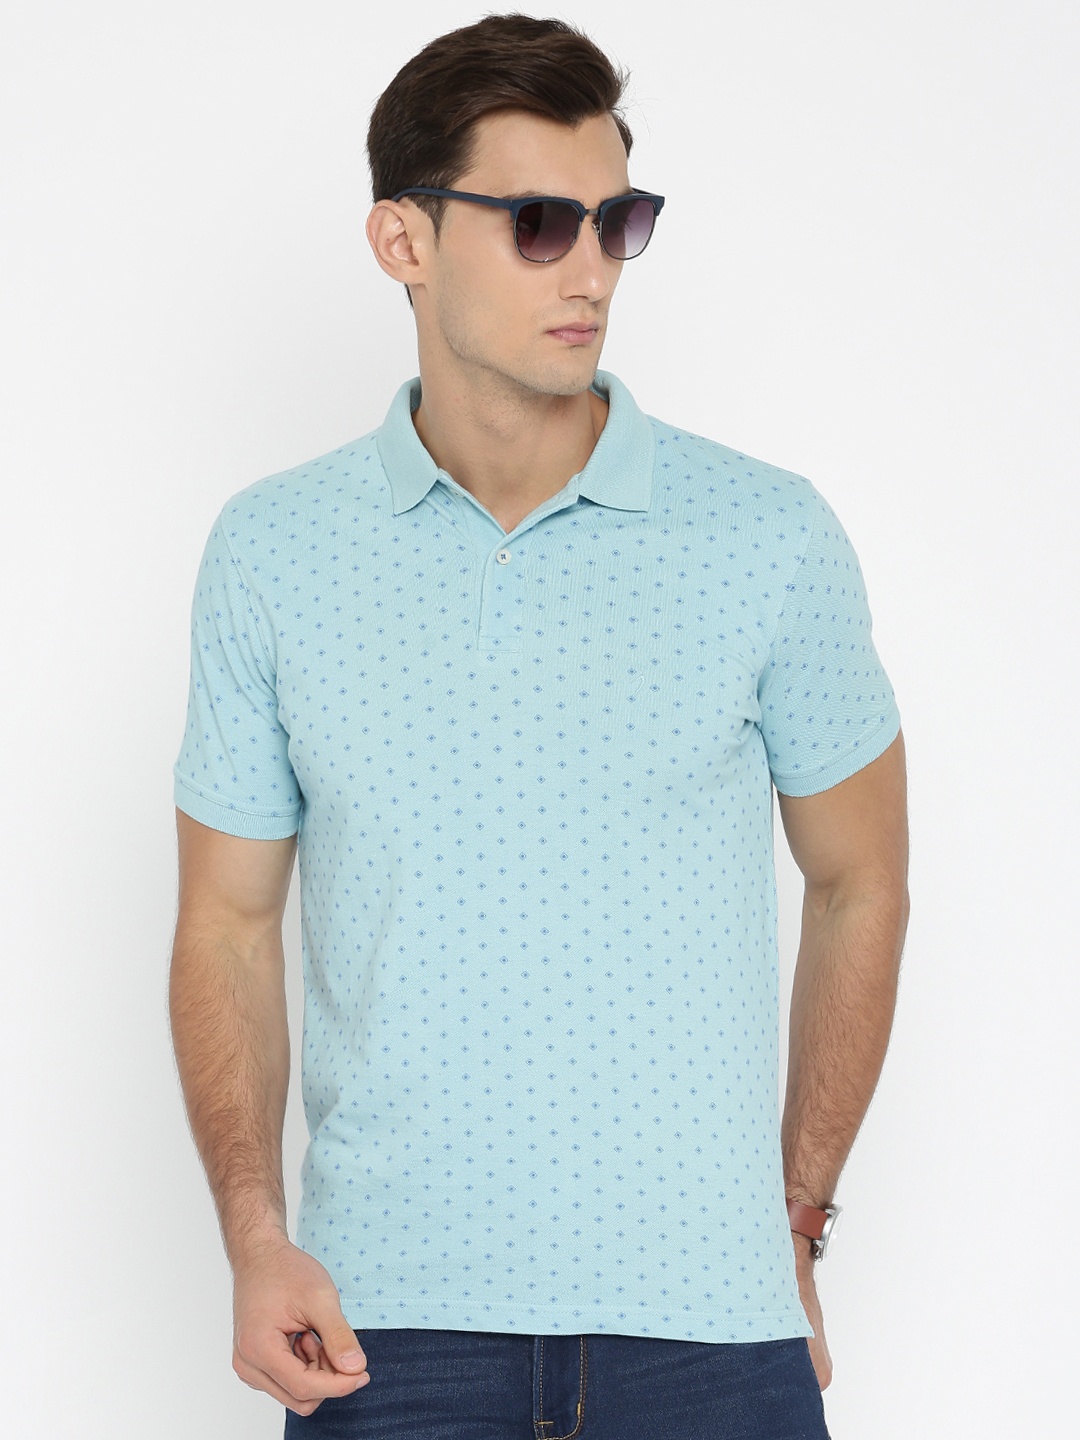 Indian terrain sky blue printed t shirt g3 mts4750 for Printed t shirts india